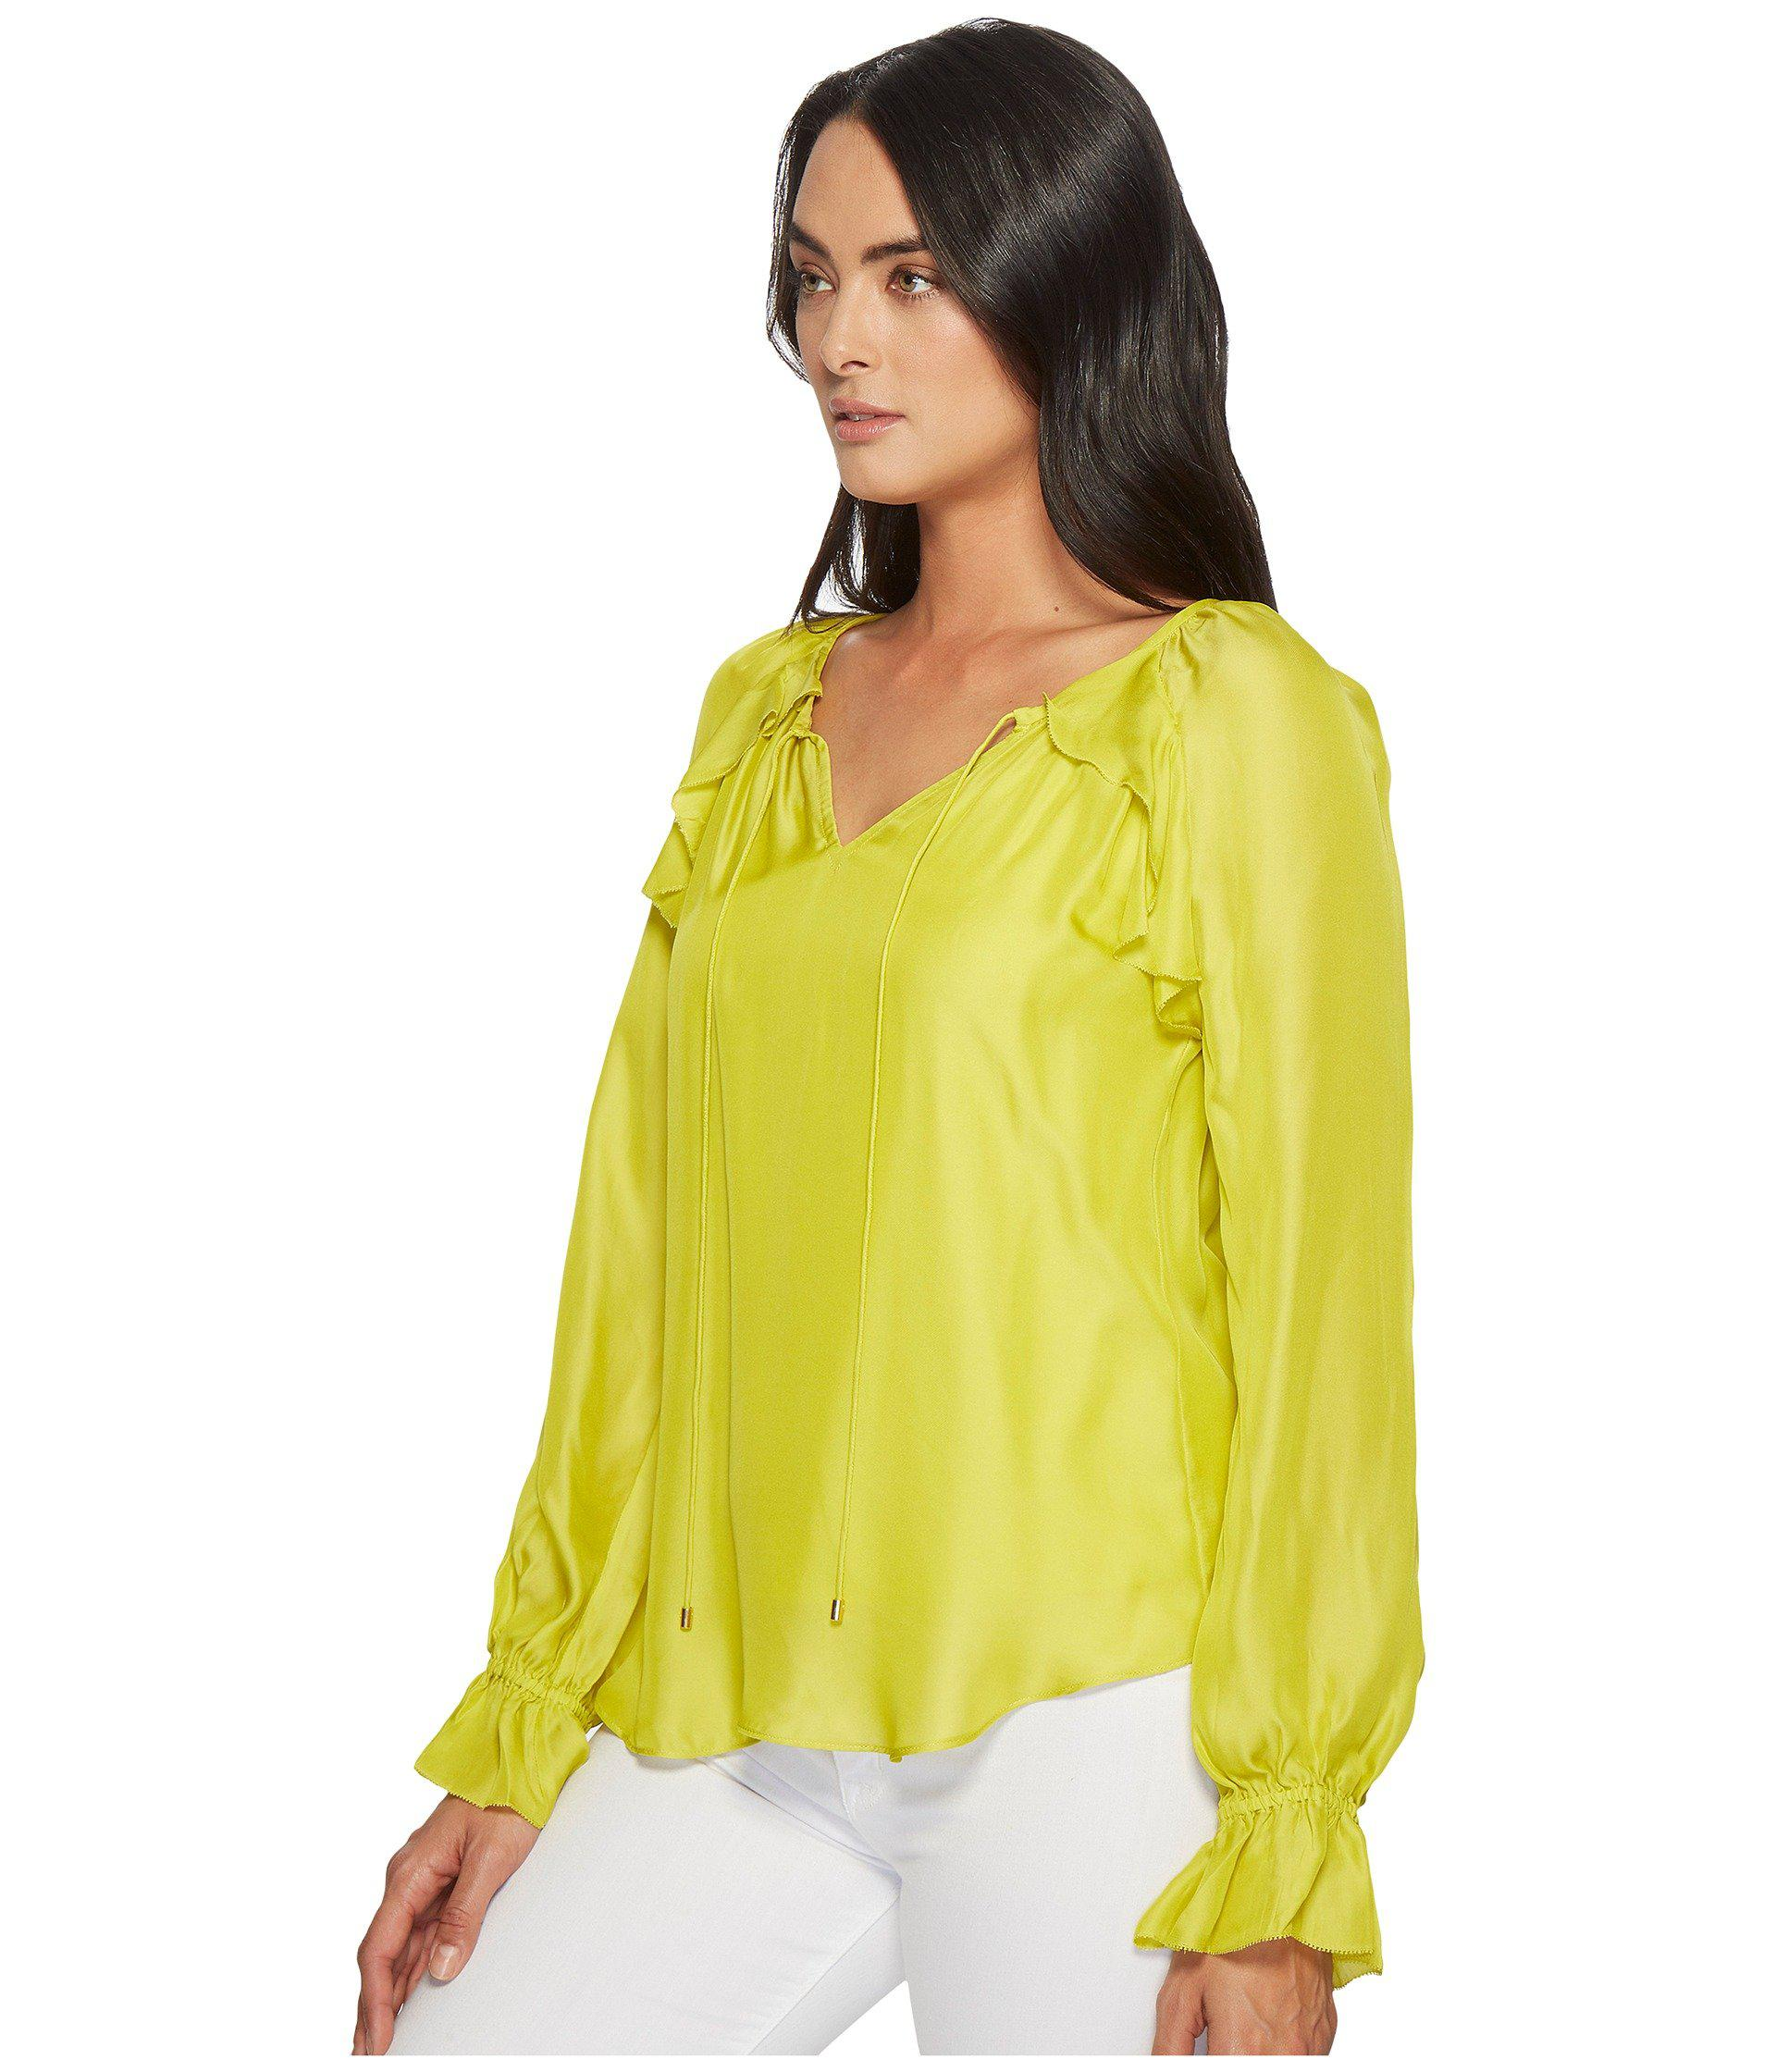 720bd16d6d3a26 Lyst - Trina Turk Magnolia Top in Yellow - Save 40%